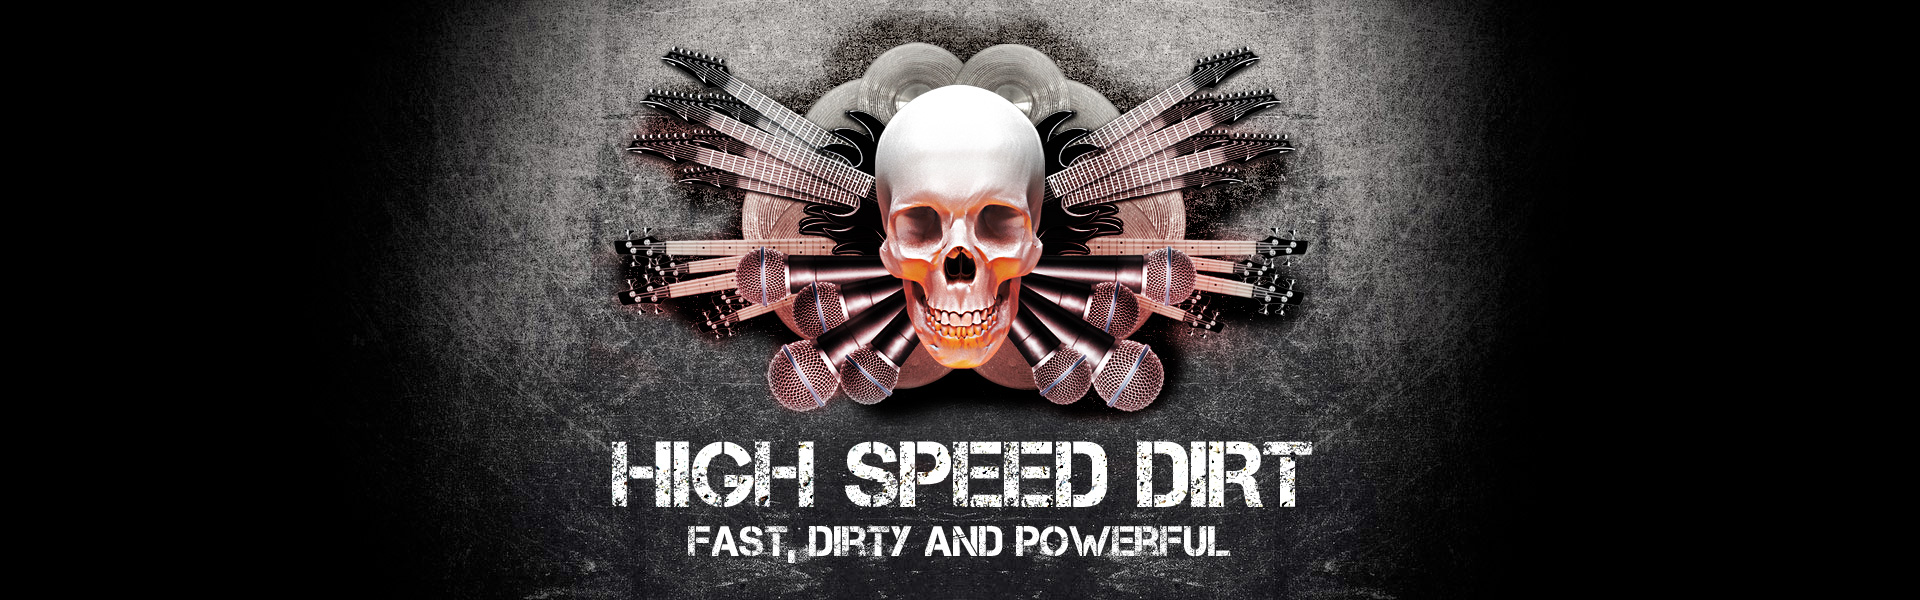 http://www.high-speed-dirt.com/wp-content/uploads/2013/07/nuovatestatahsd.jpg